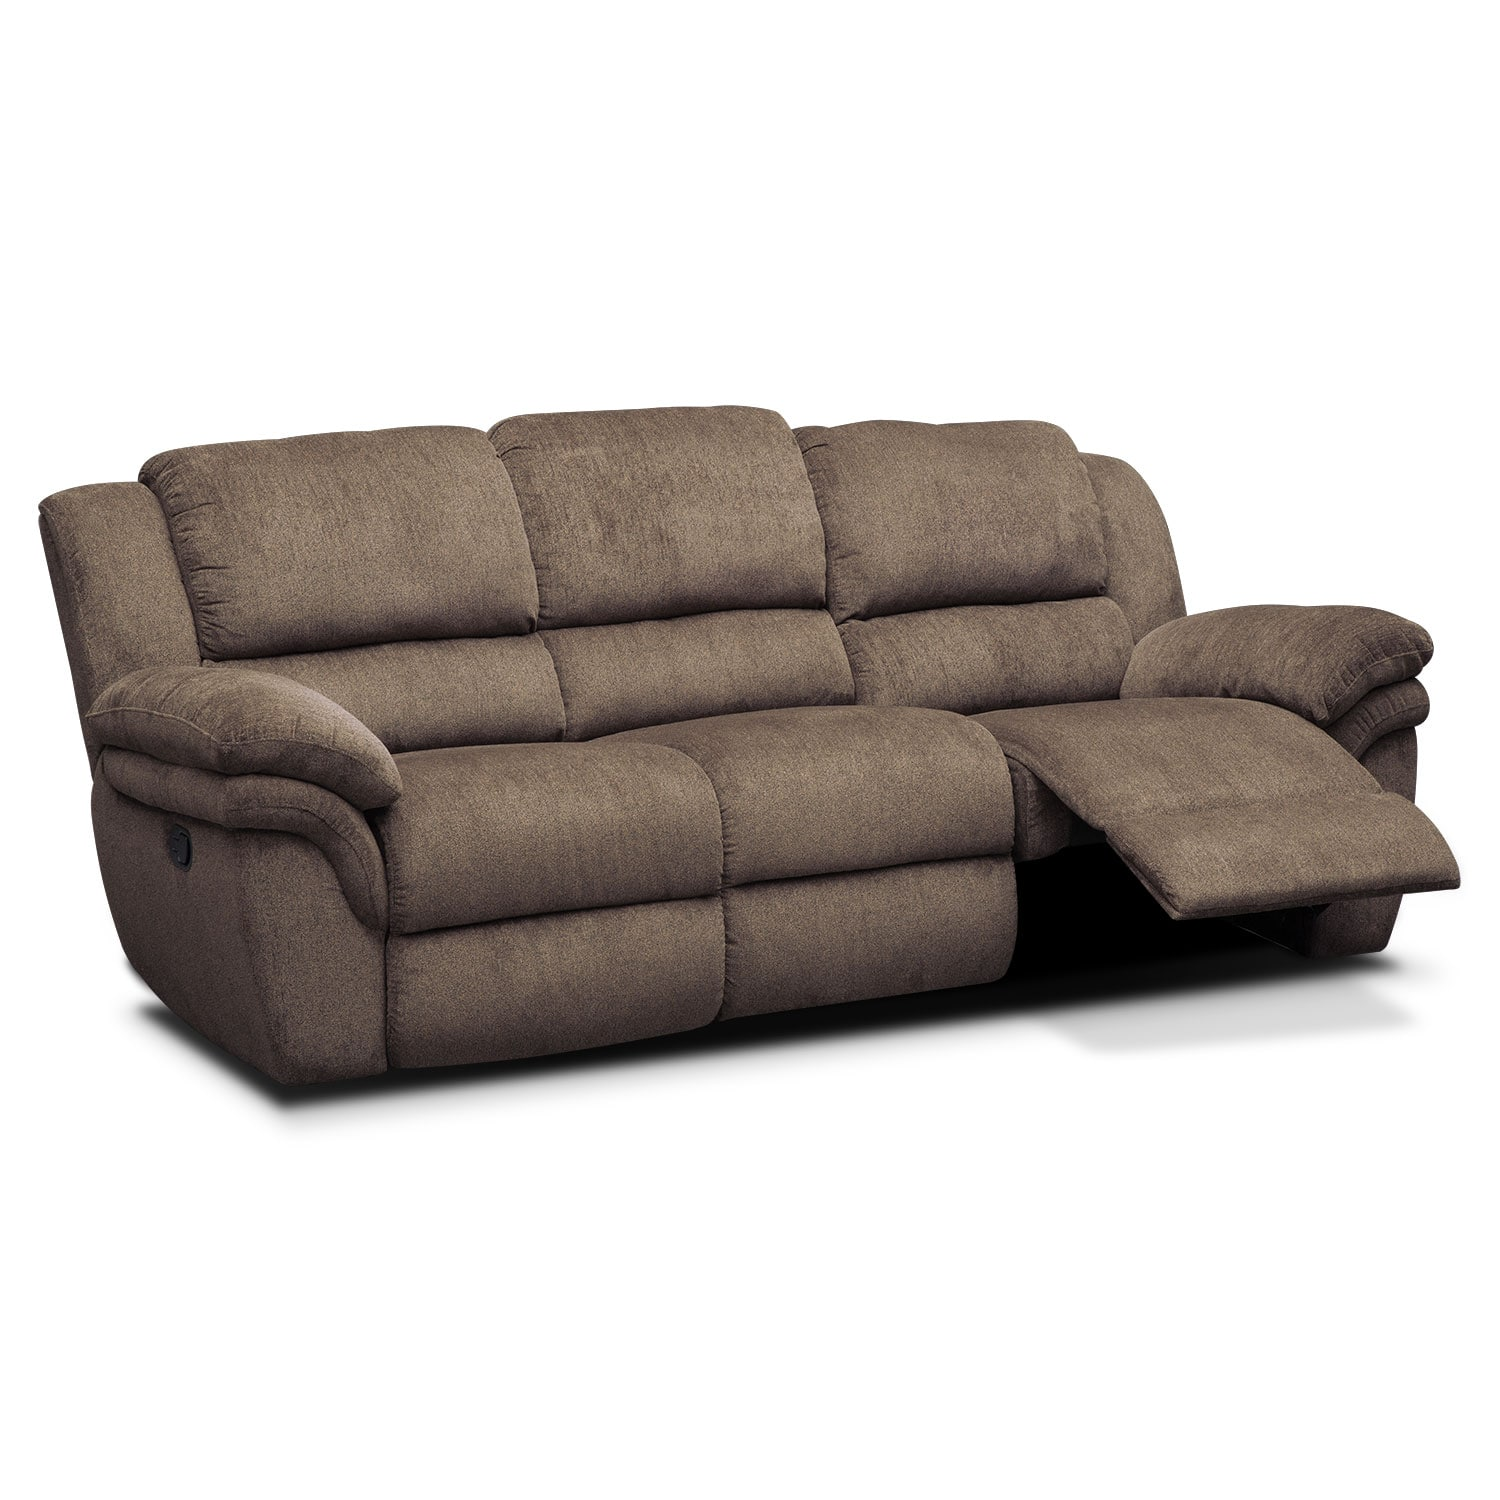 Furniture Com: Aldo Manual Reclining Sofa - Mocha